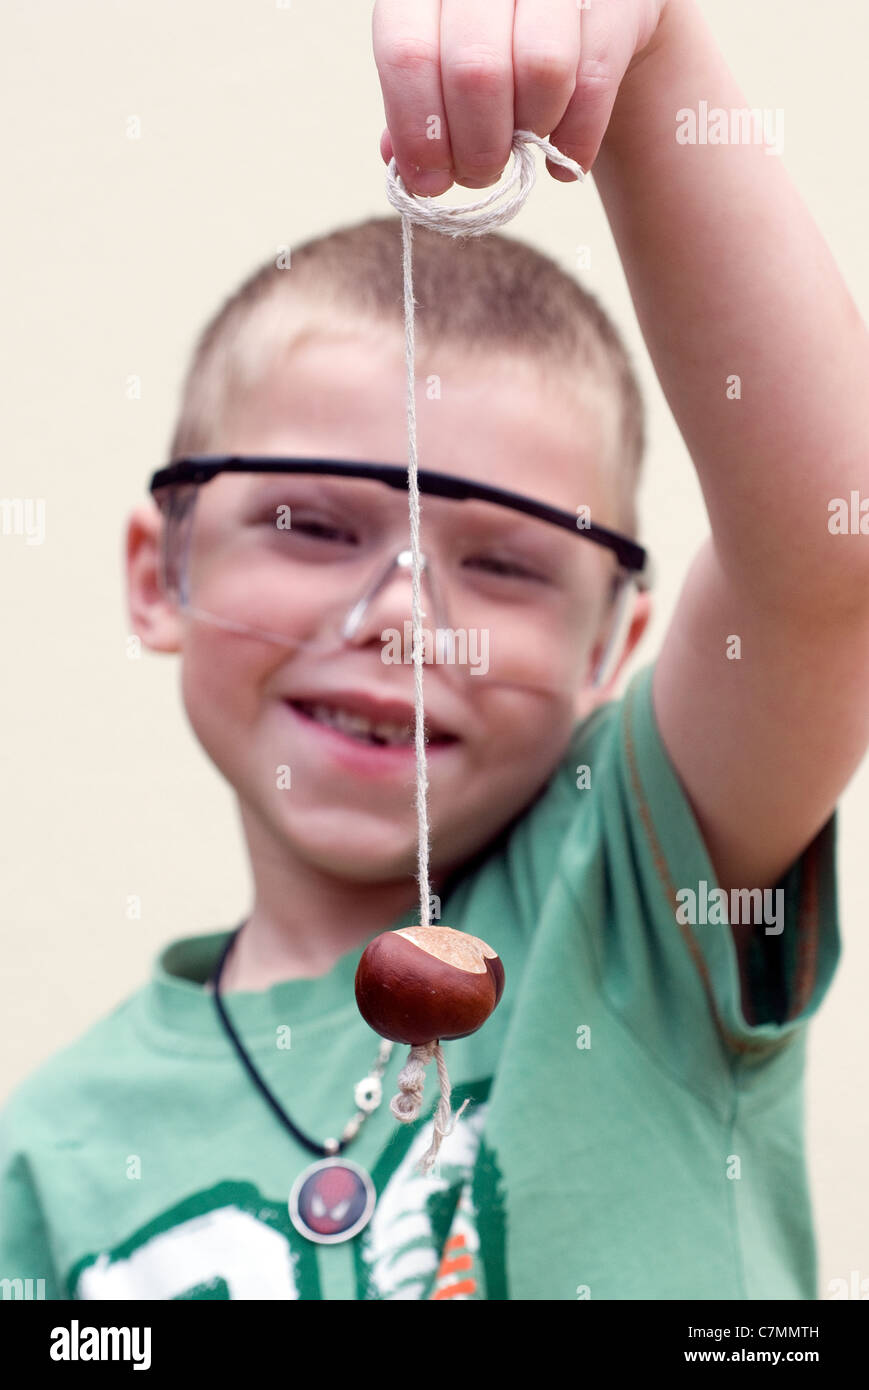 Boy playing Conkers with Safety glasses on, chestnut, conkers, cutout, game, hand, holding, horse, horse-chestnut, - Stock Image